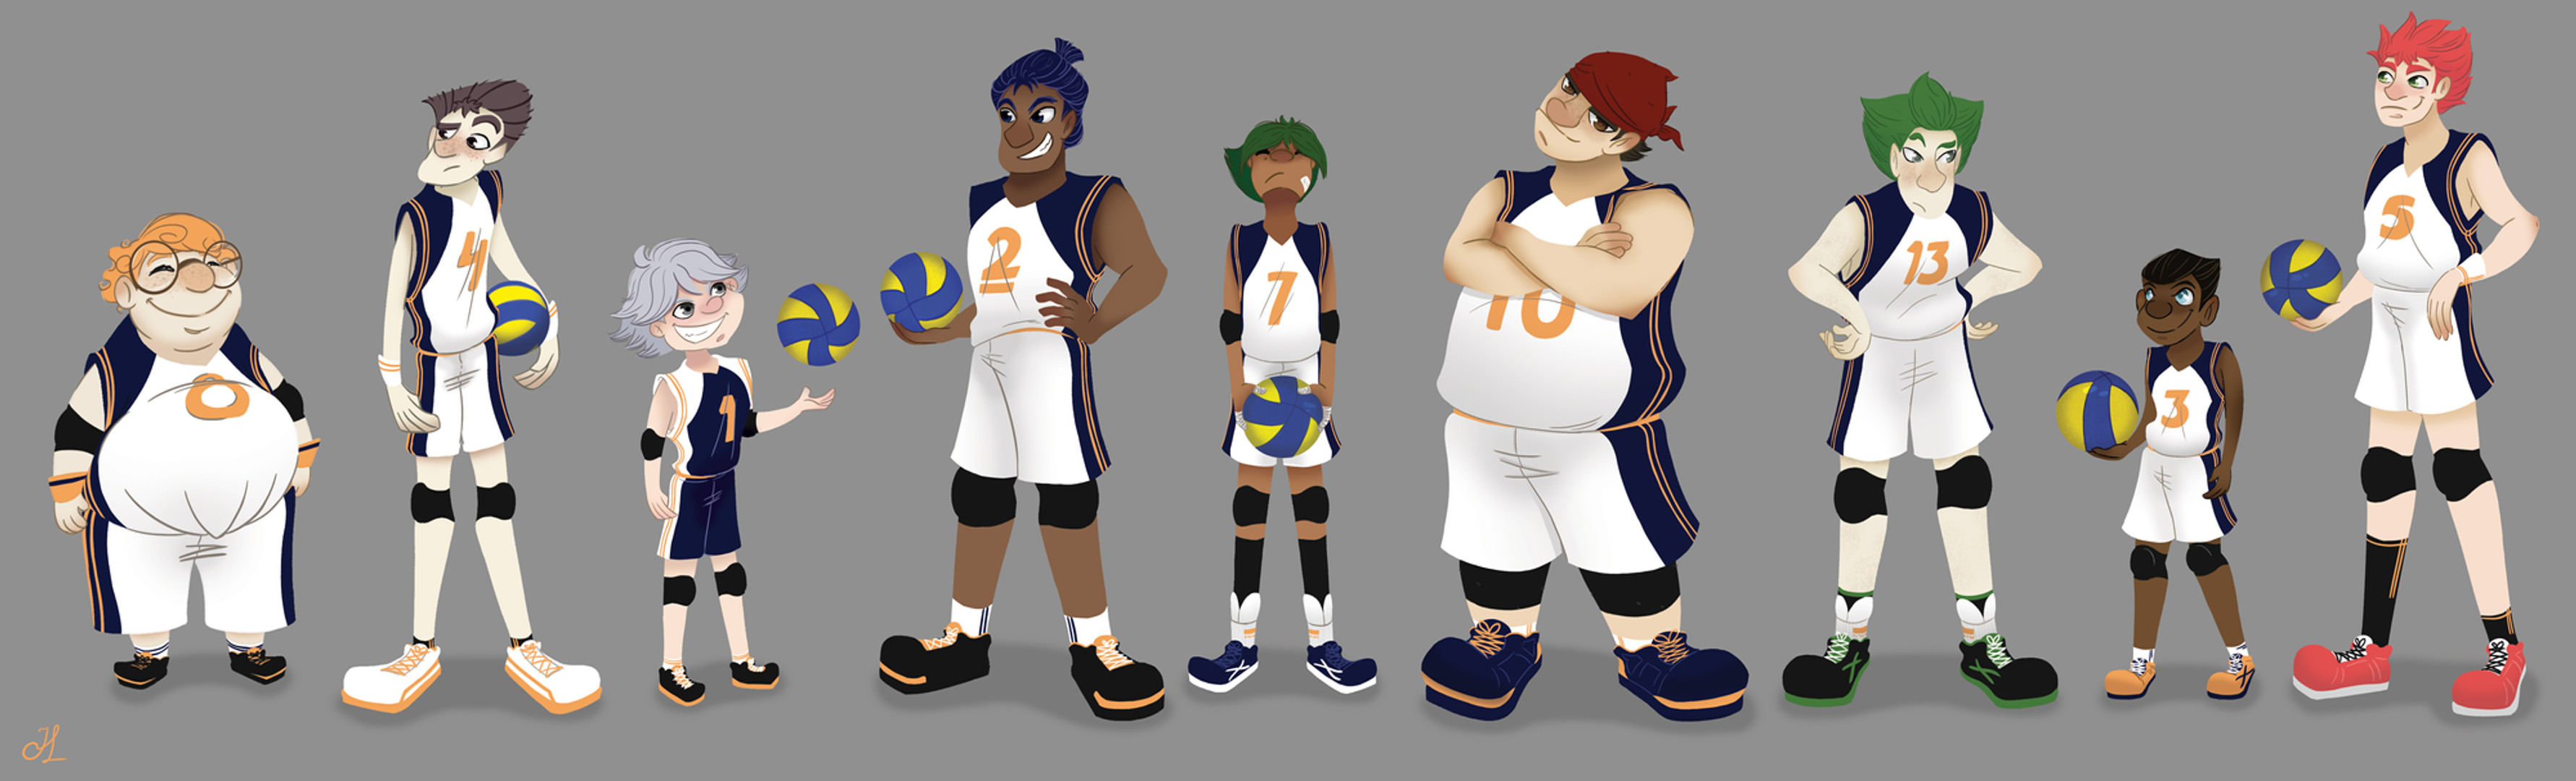 Volleyball-team-lineup.jpg